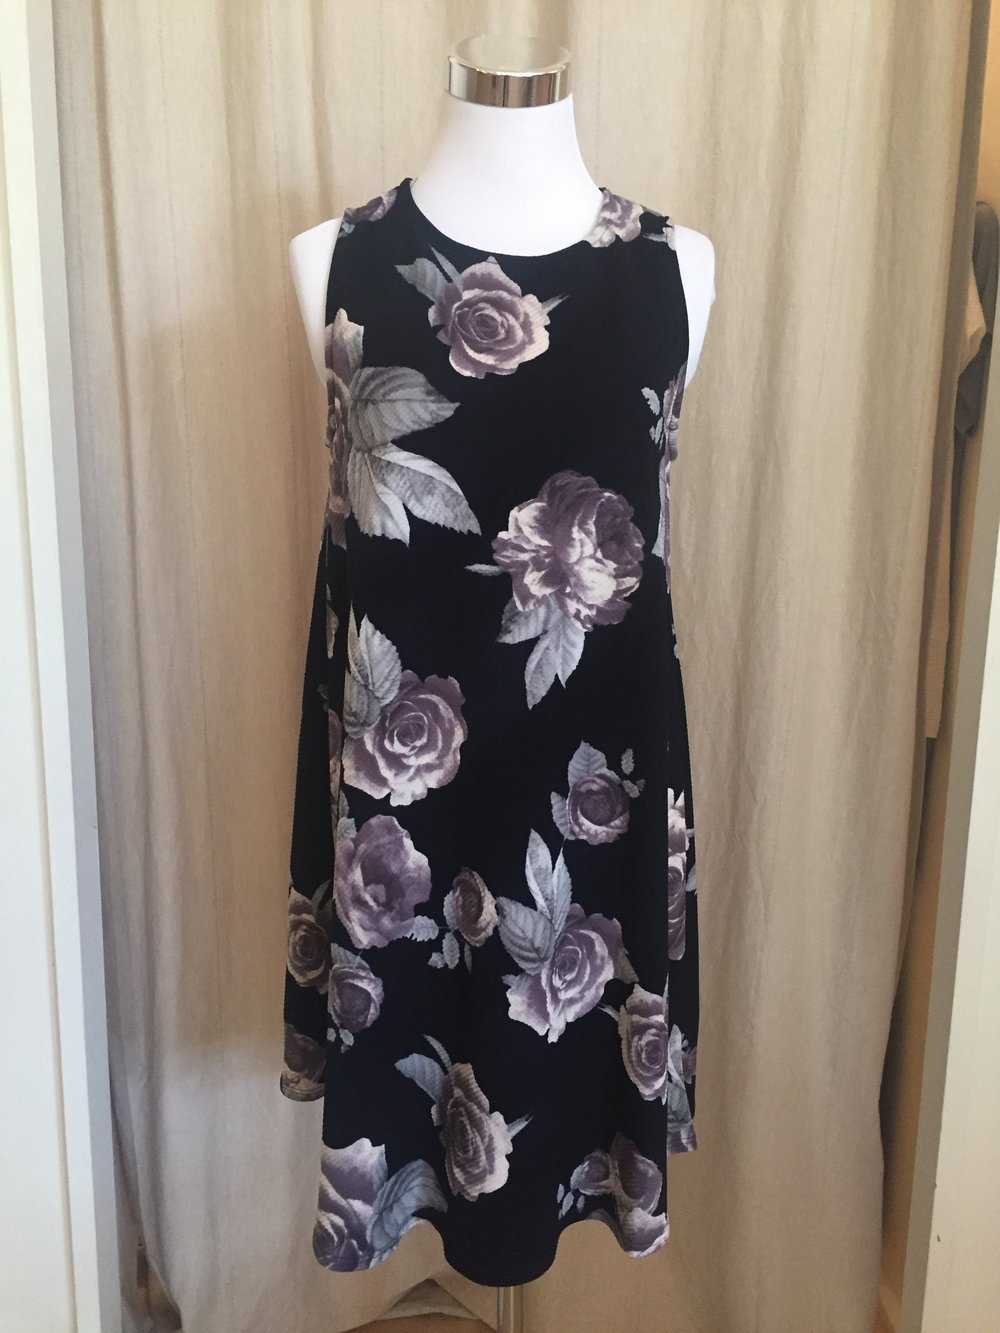 Midnight Floral A-Line Dress, $38